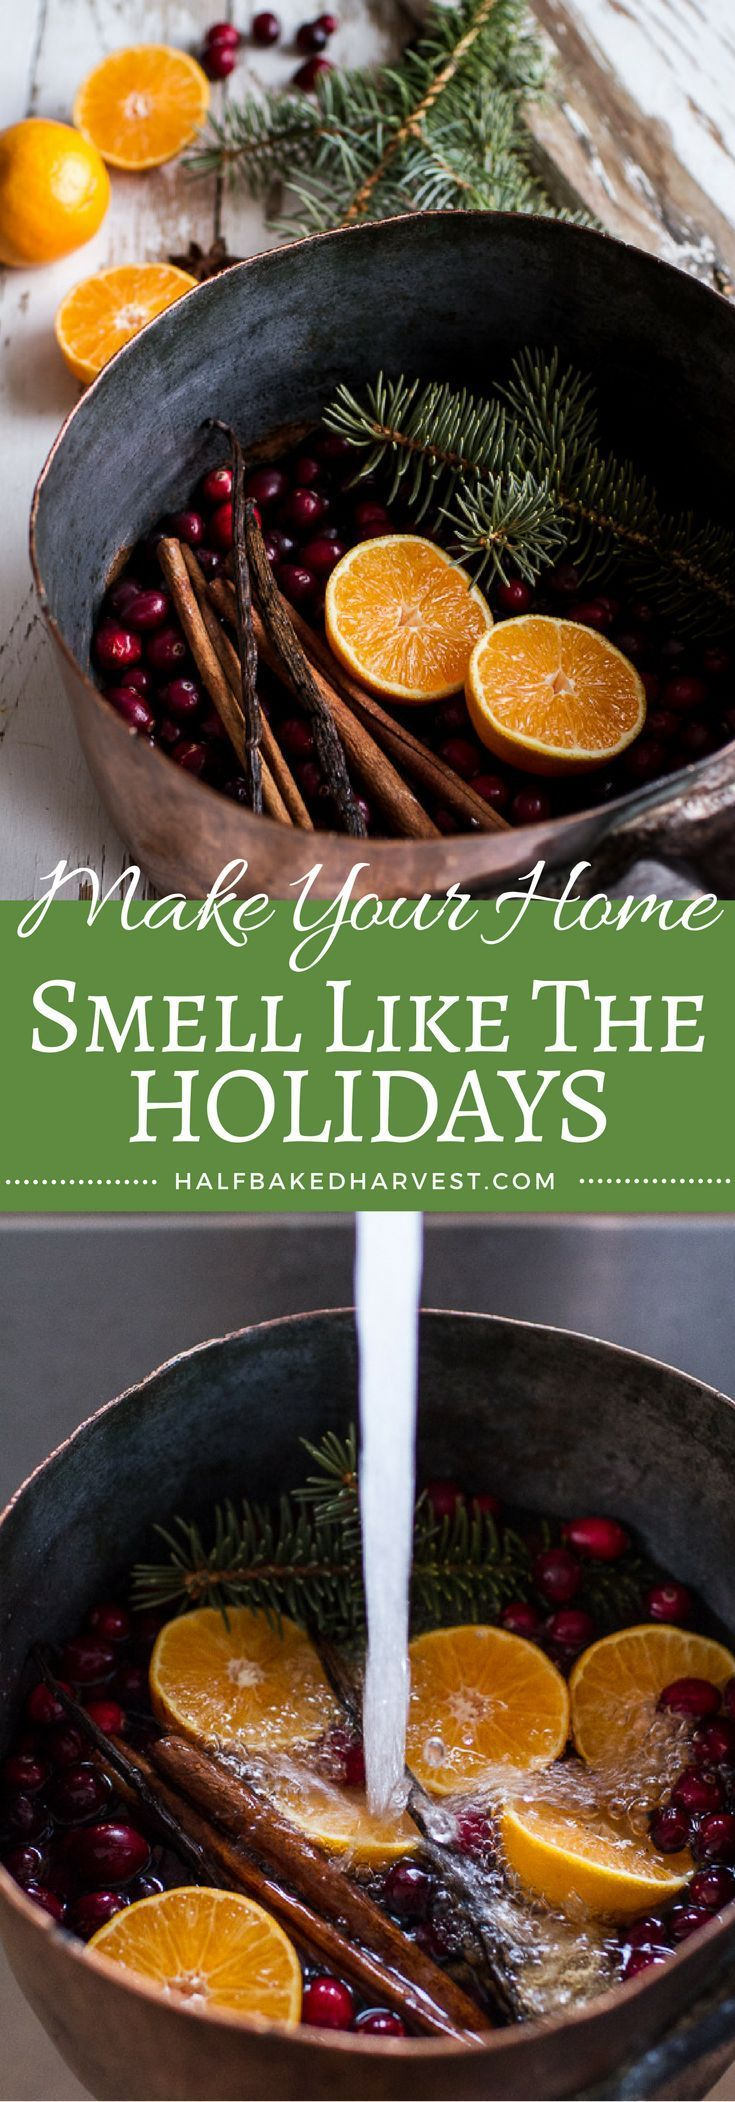 Homemade Holidays- Let's Make the House Smell Like Christmas | http://halfbakedharvest.com /hbharvest/